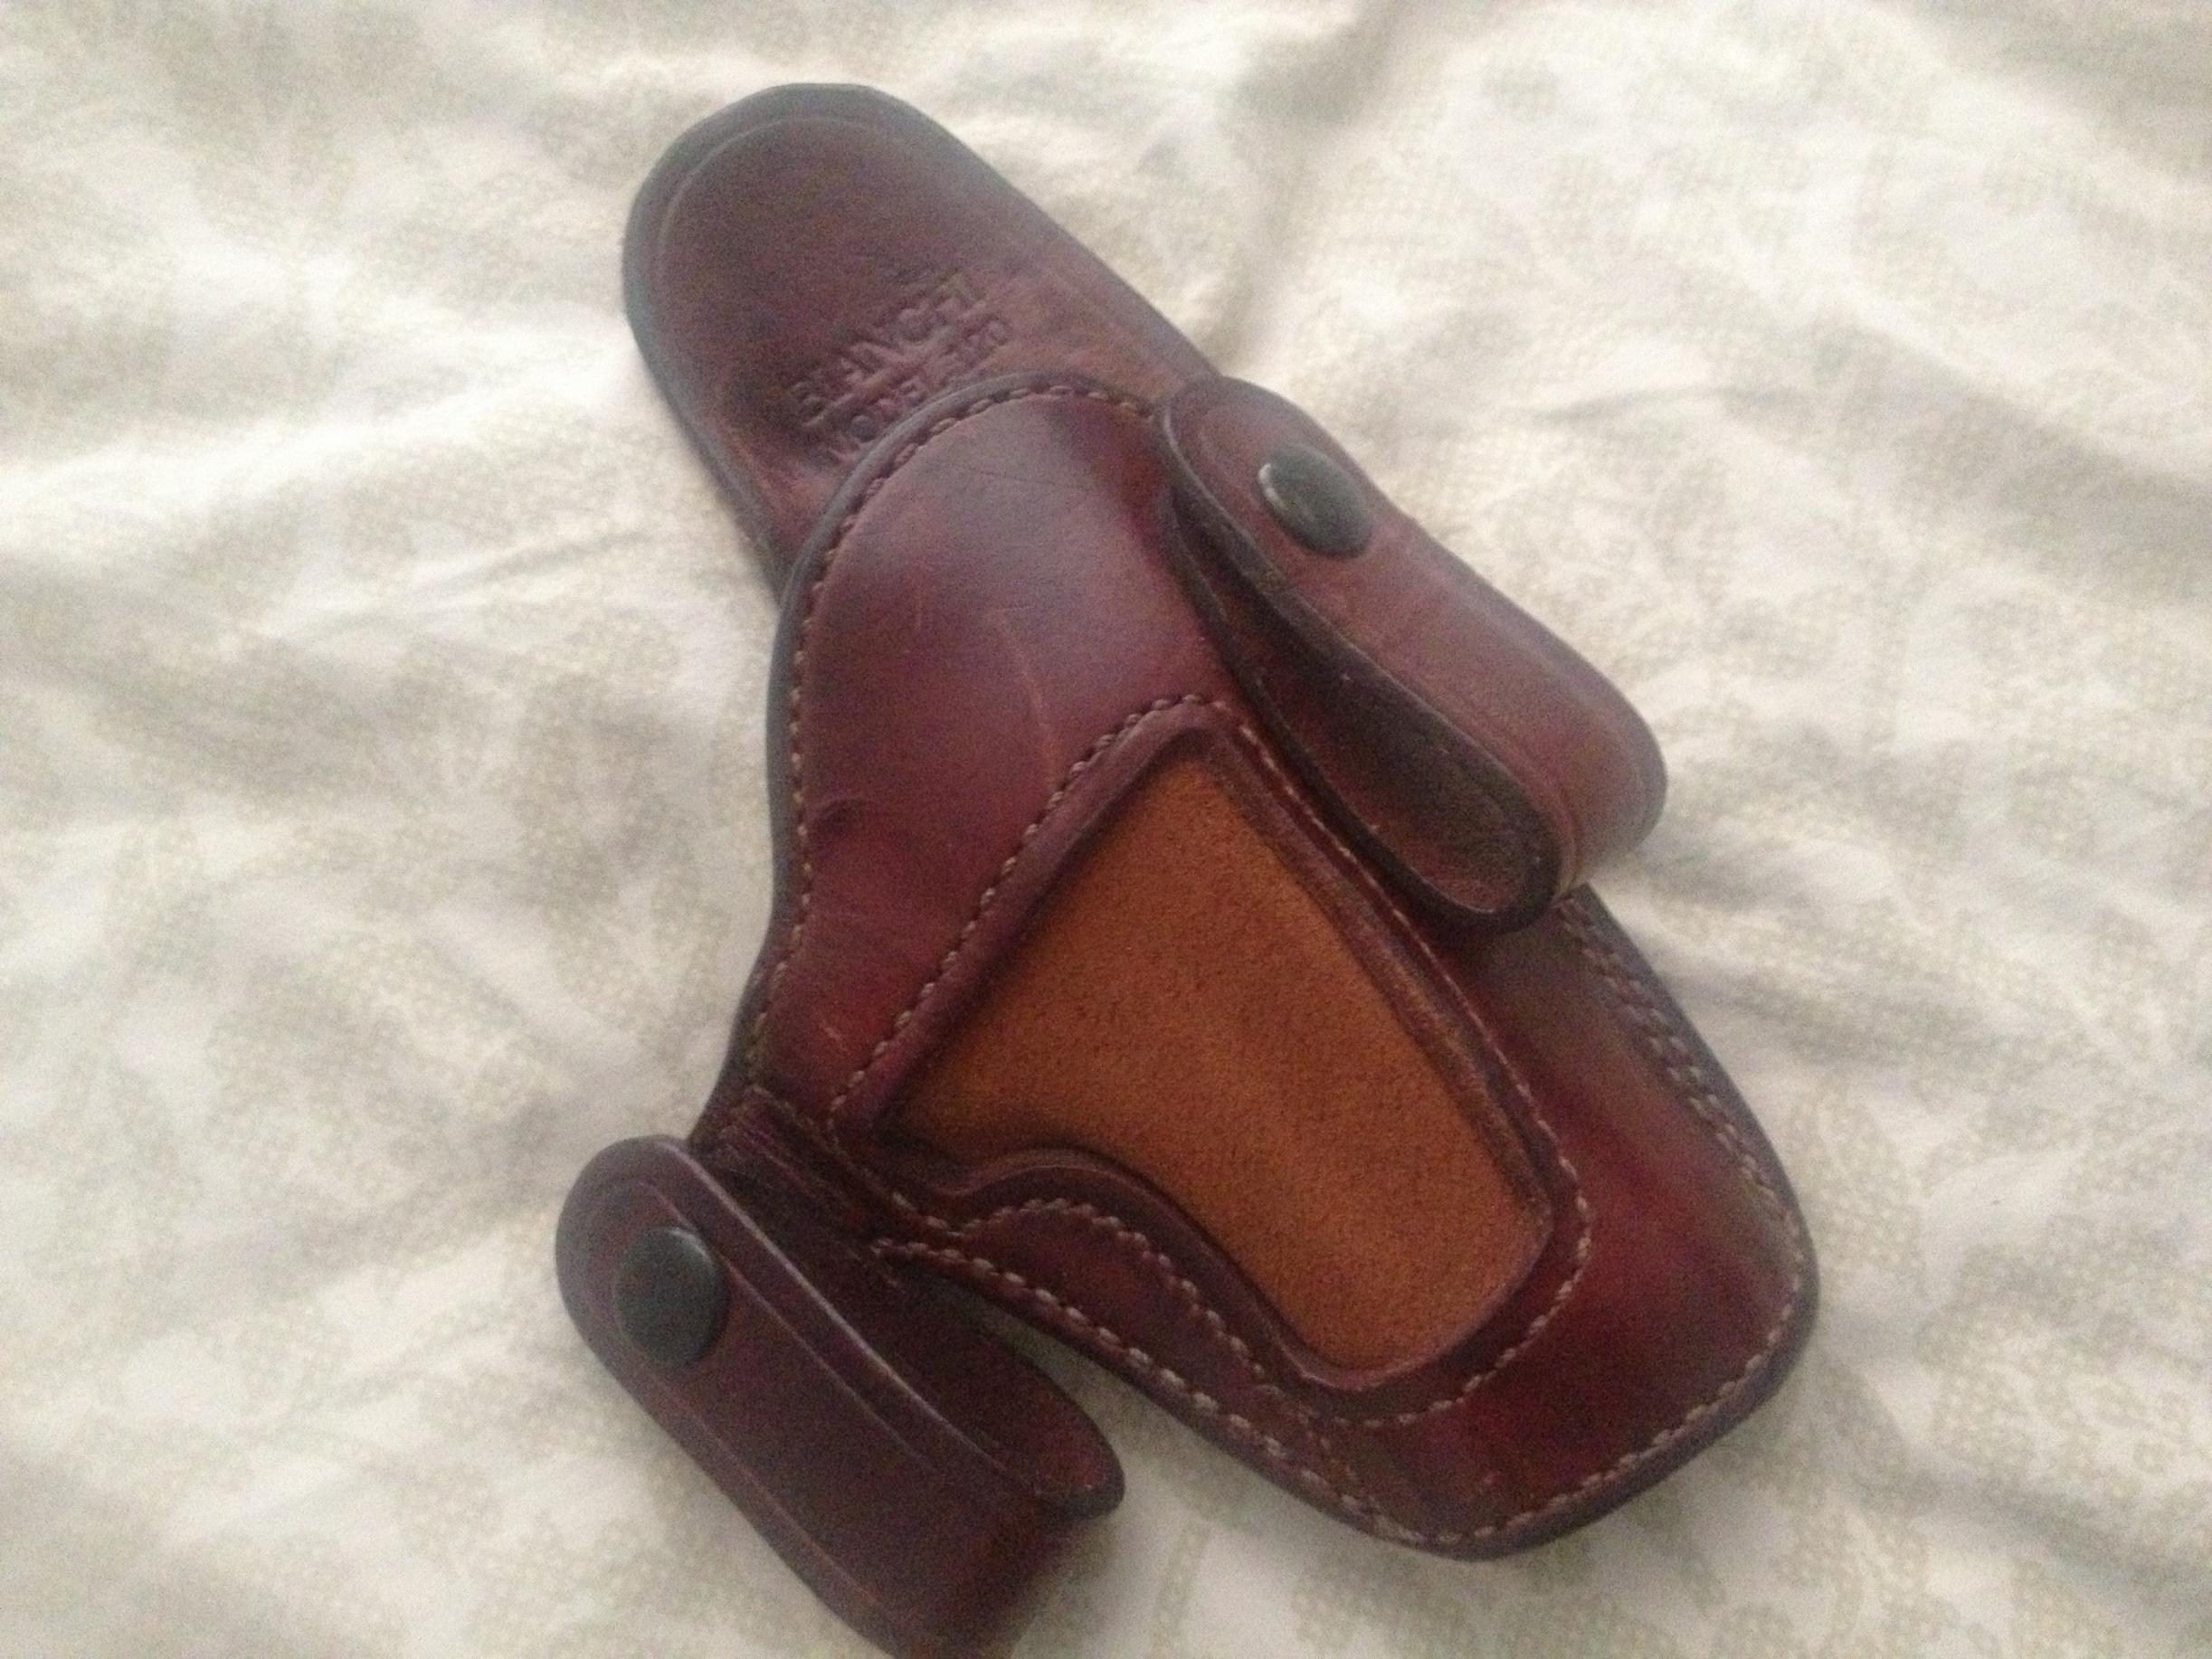 For sale: belt and holsters-image.jpg